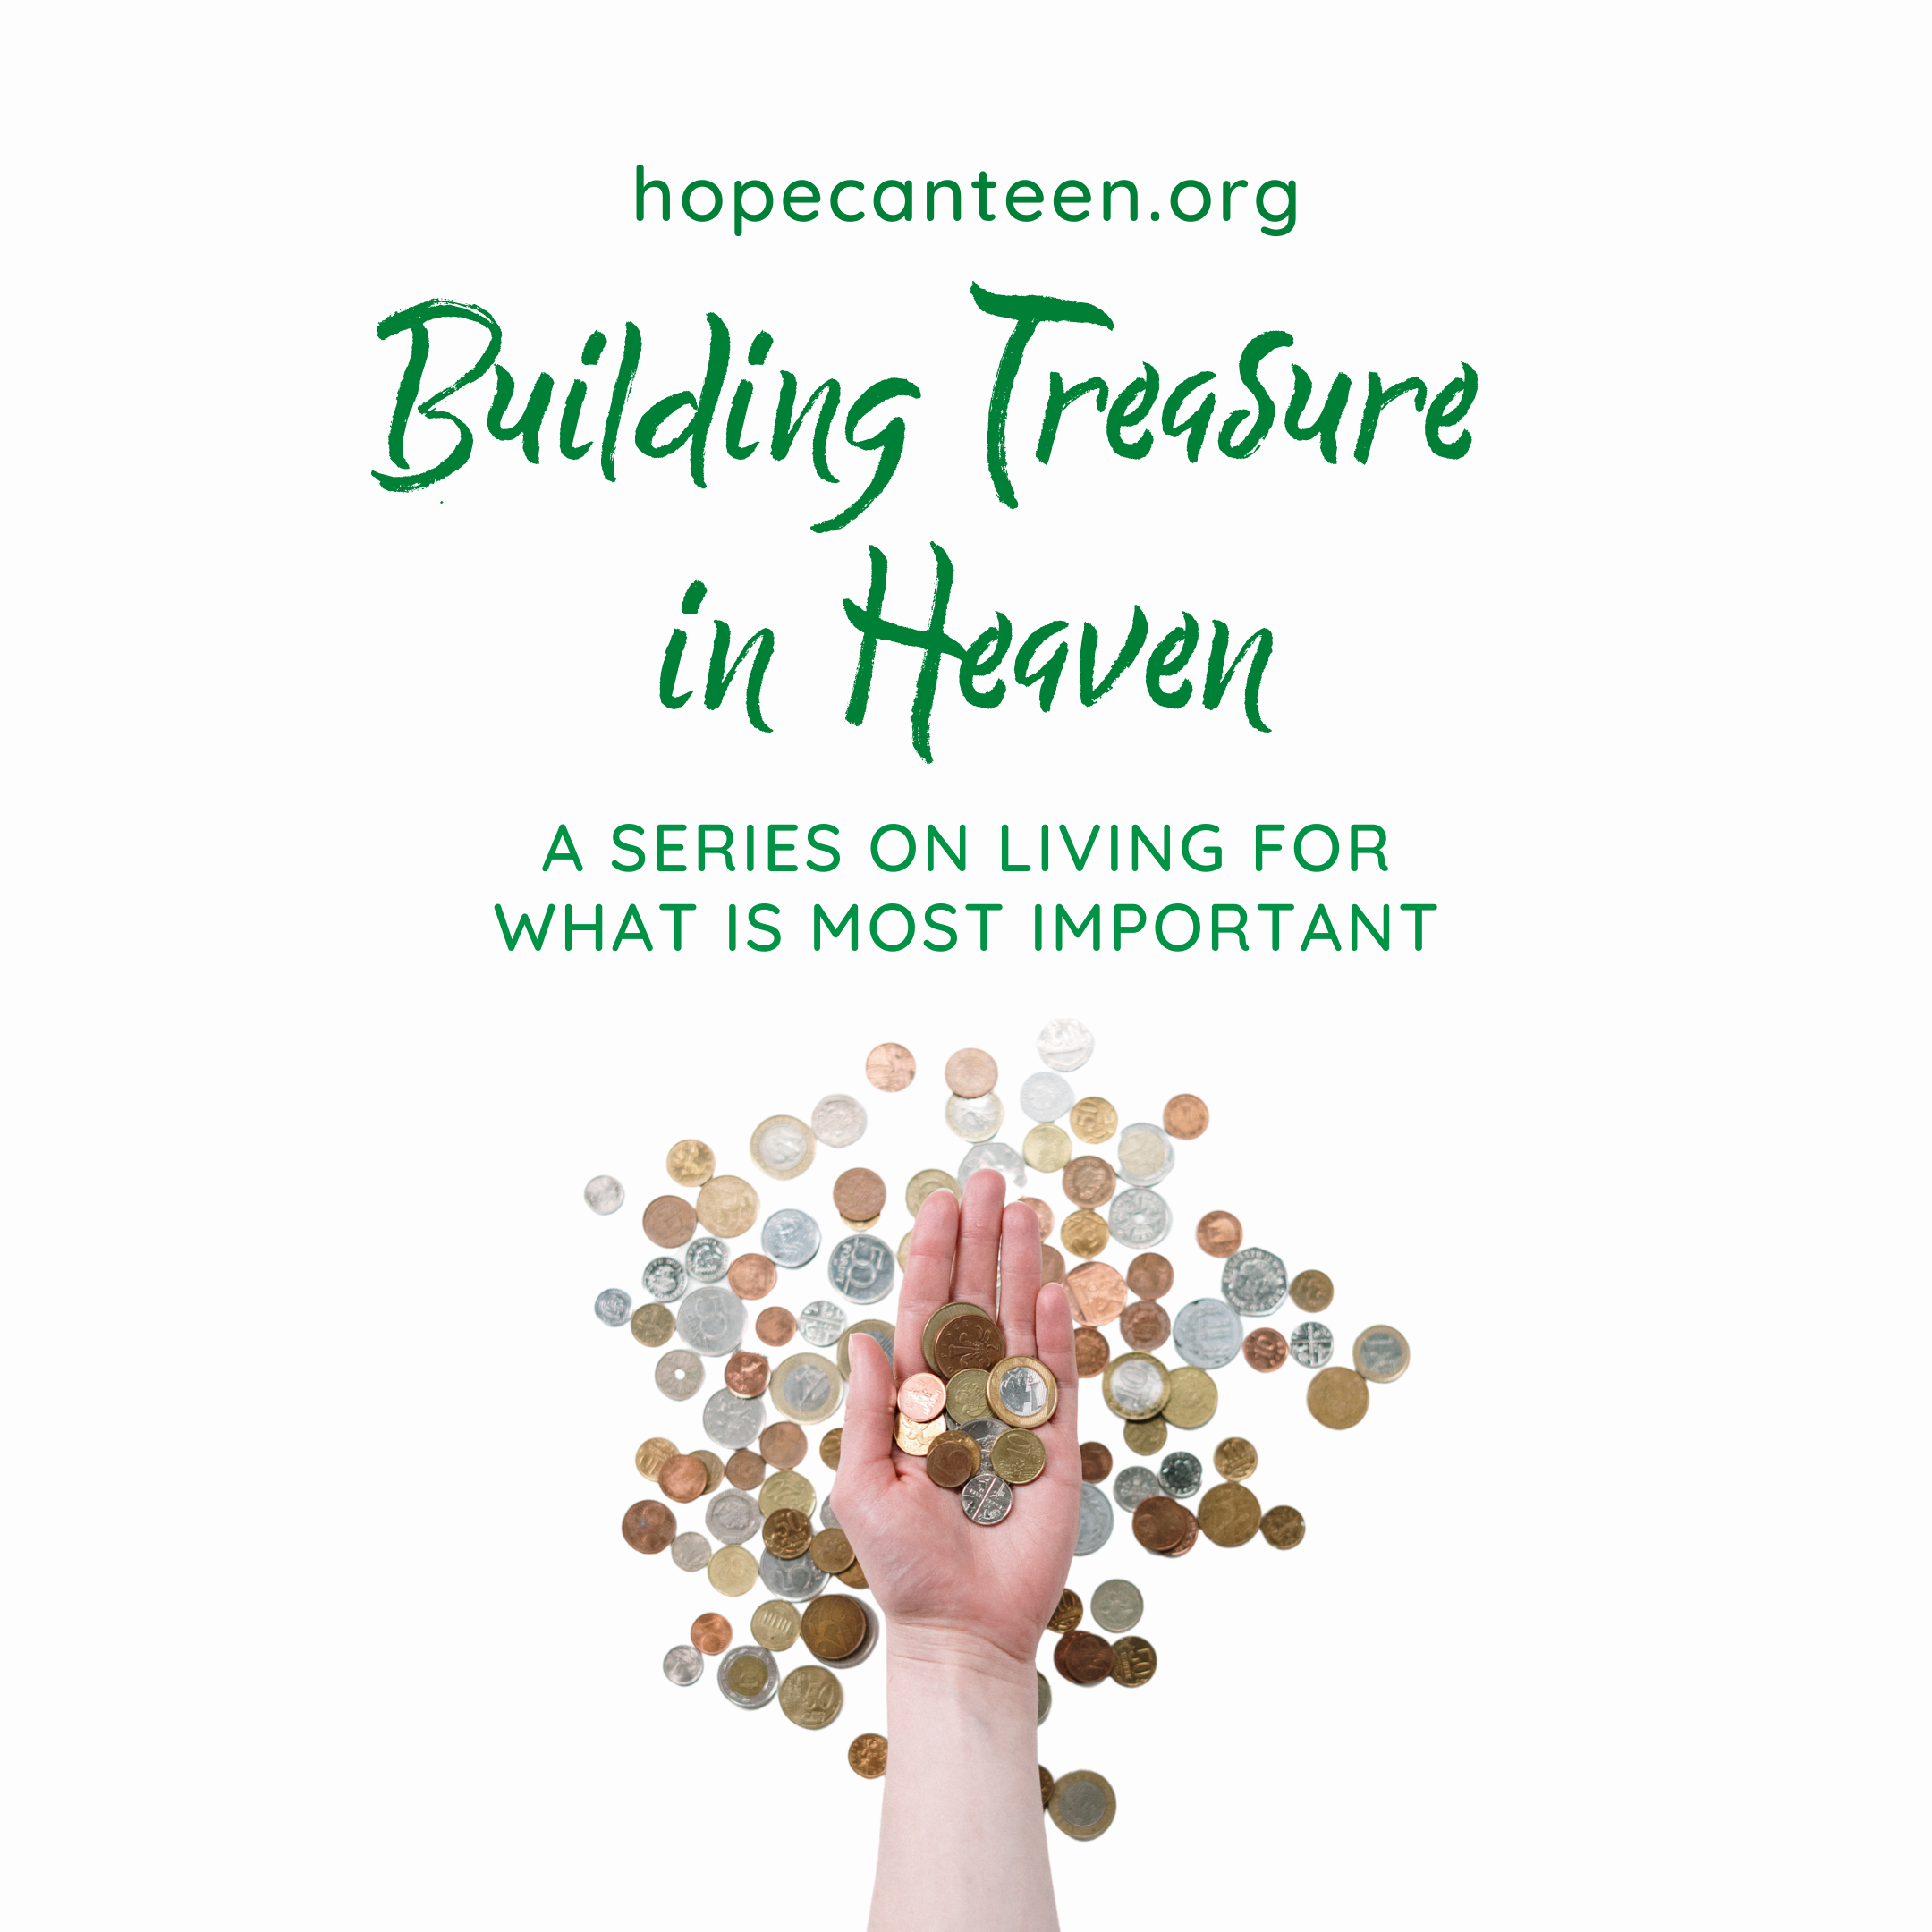 Reflect on what is most important in this new series on Building Treasure in Heaven from the Hope Canteen blog